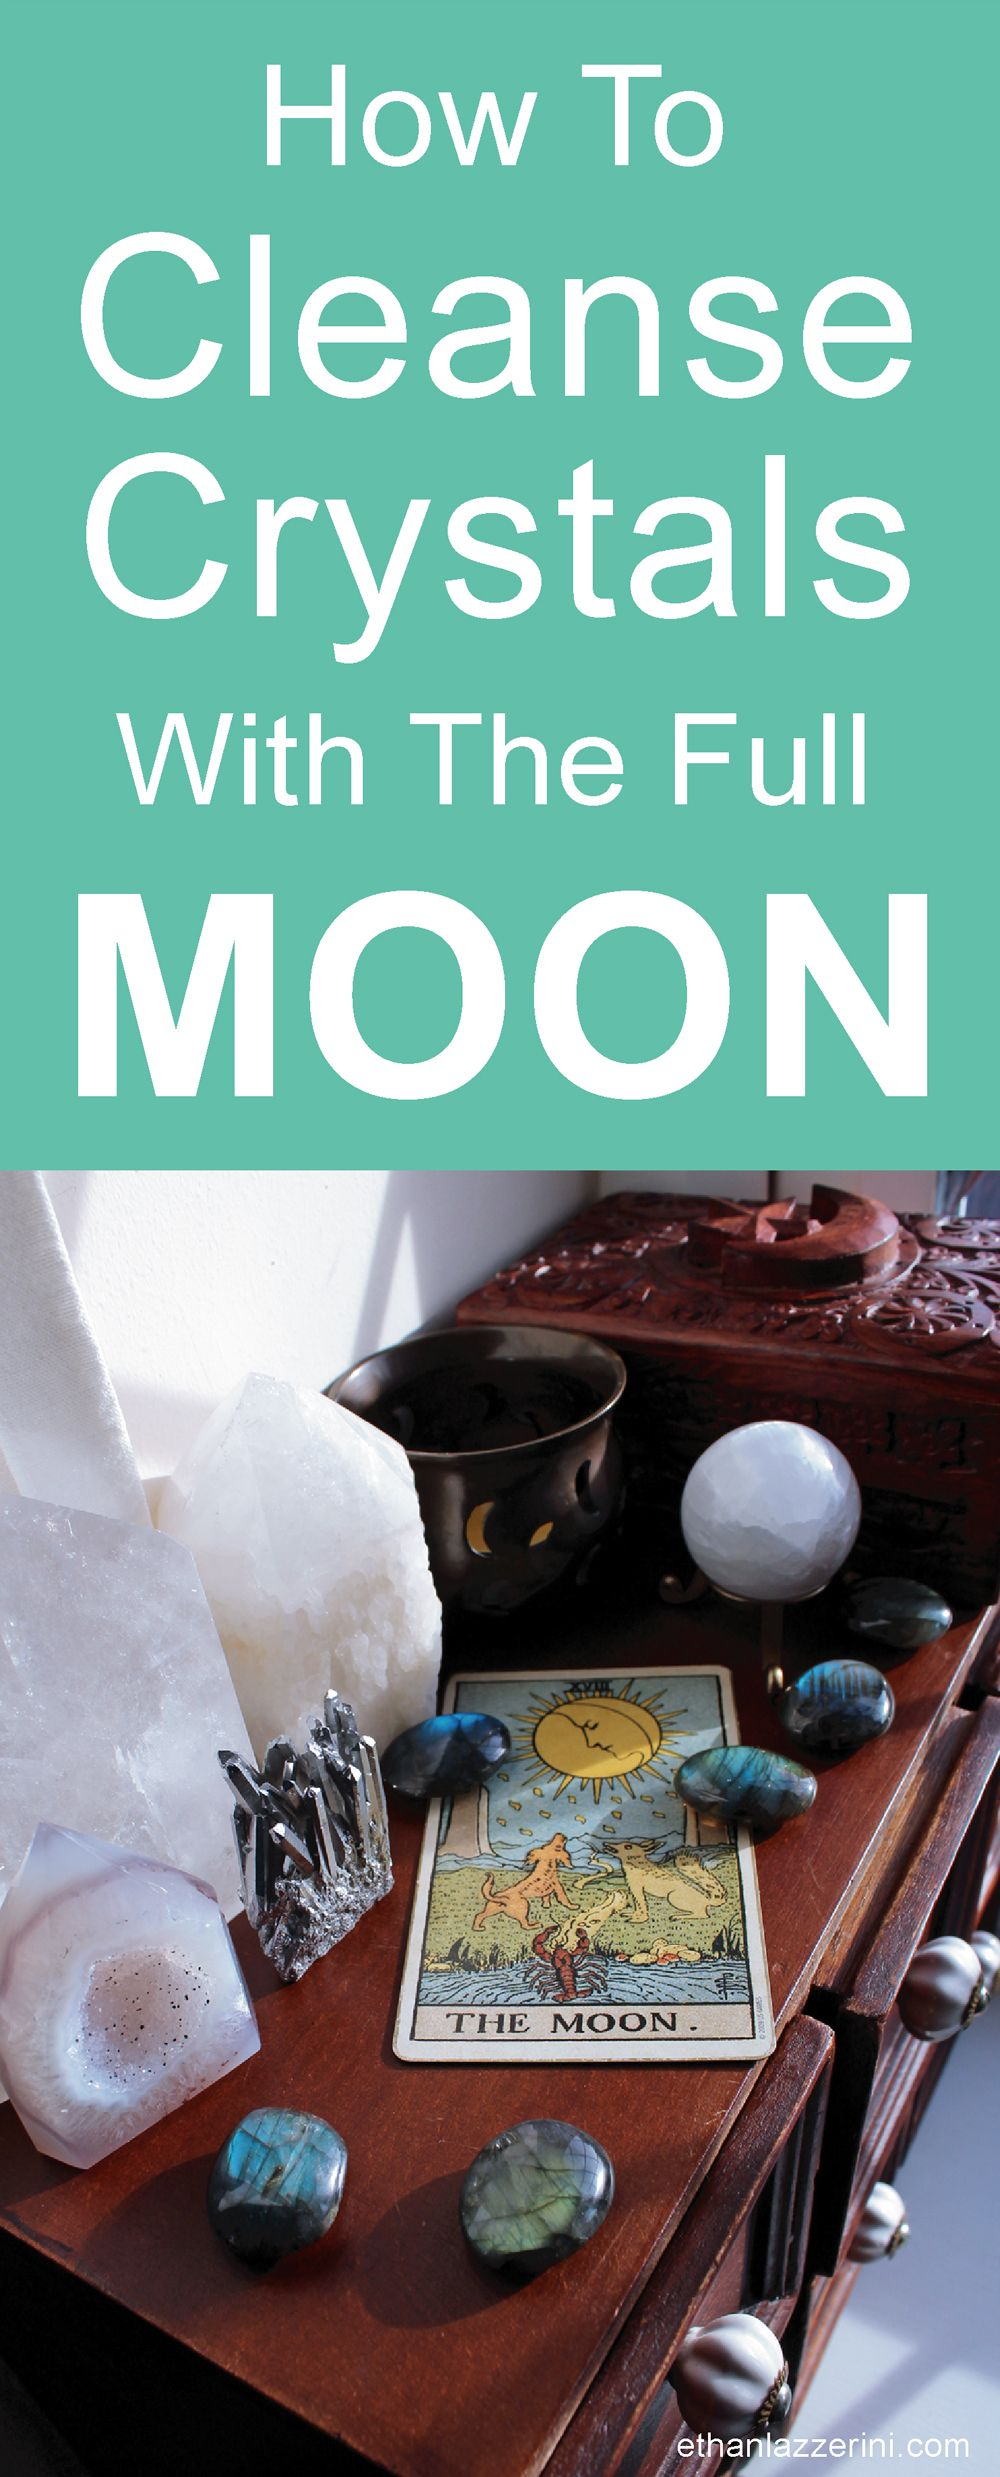 How to cleans e crystals by the full moon full moon how